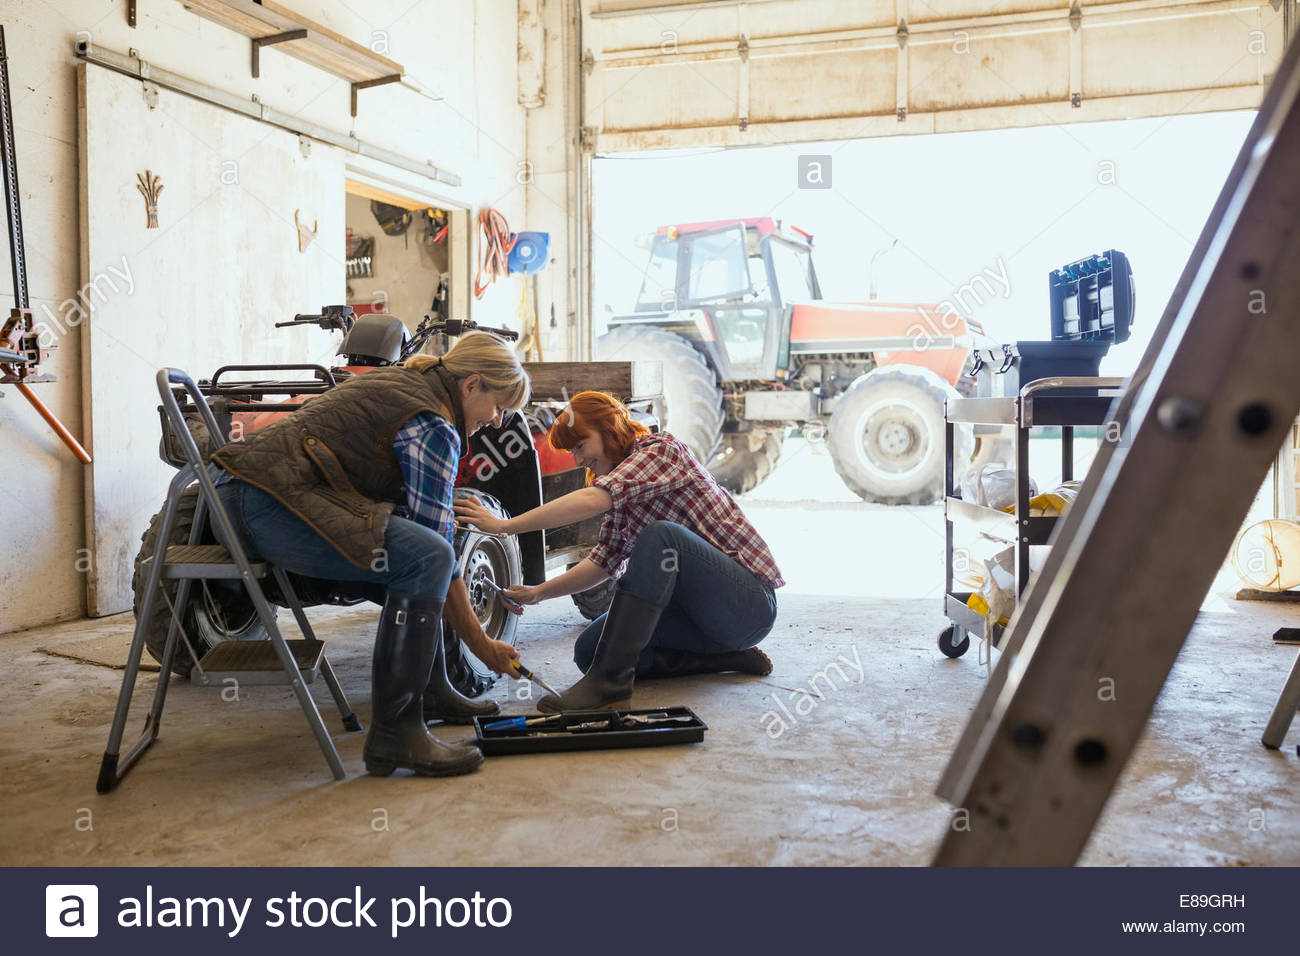 Mother and daughter repairing quadbike wheel - Stock Image